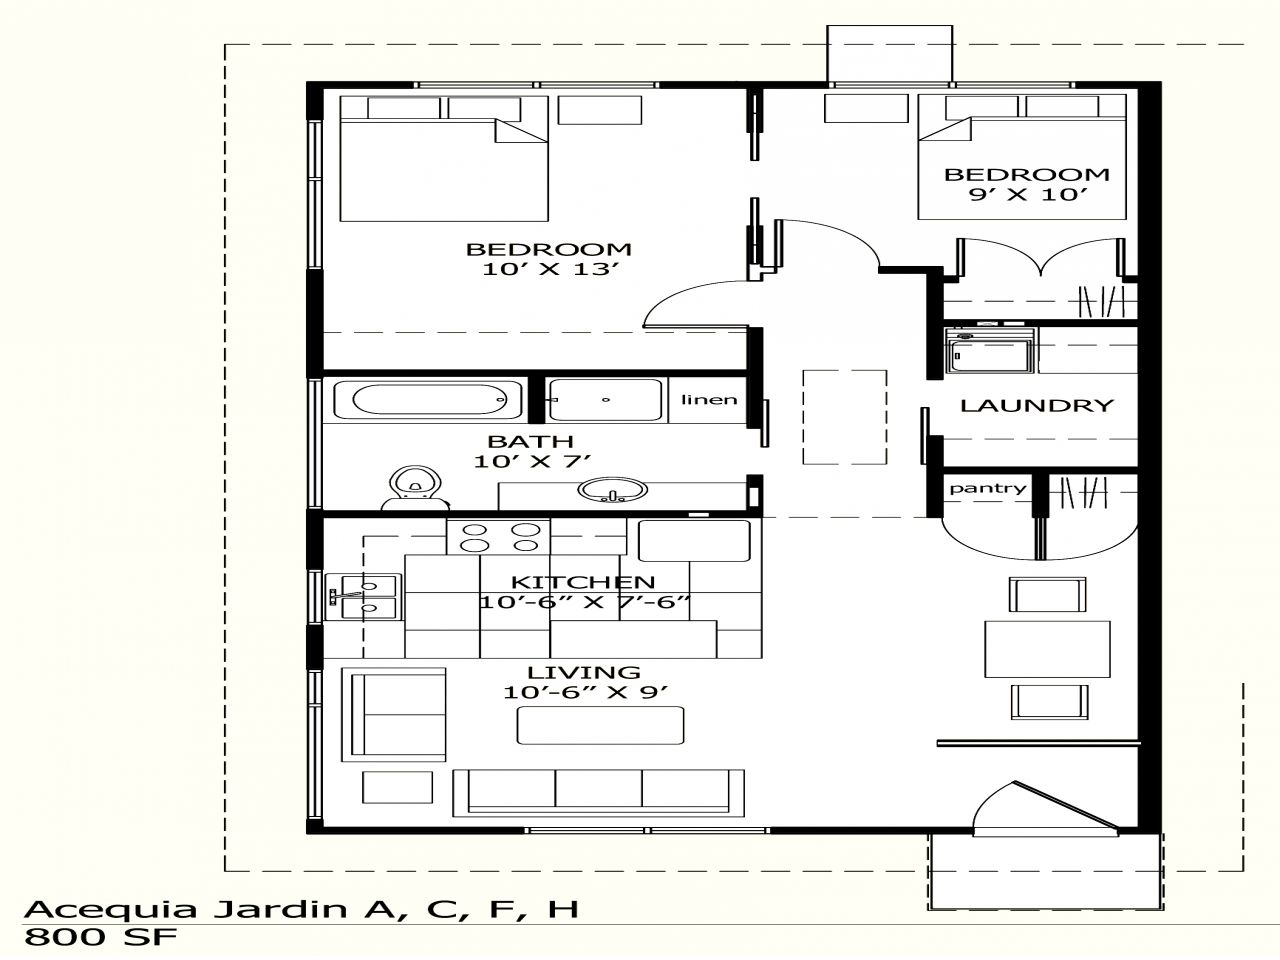 House Plans Under 800 Sq Ft Escortsea Square Feet Kerala Modern Lrg 467e53ee67b 800 Square Foot Small House Layout House Floor Plans Cottage House Plans